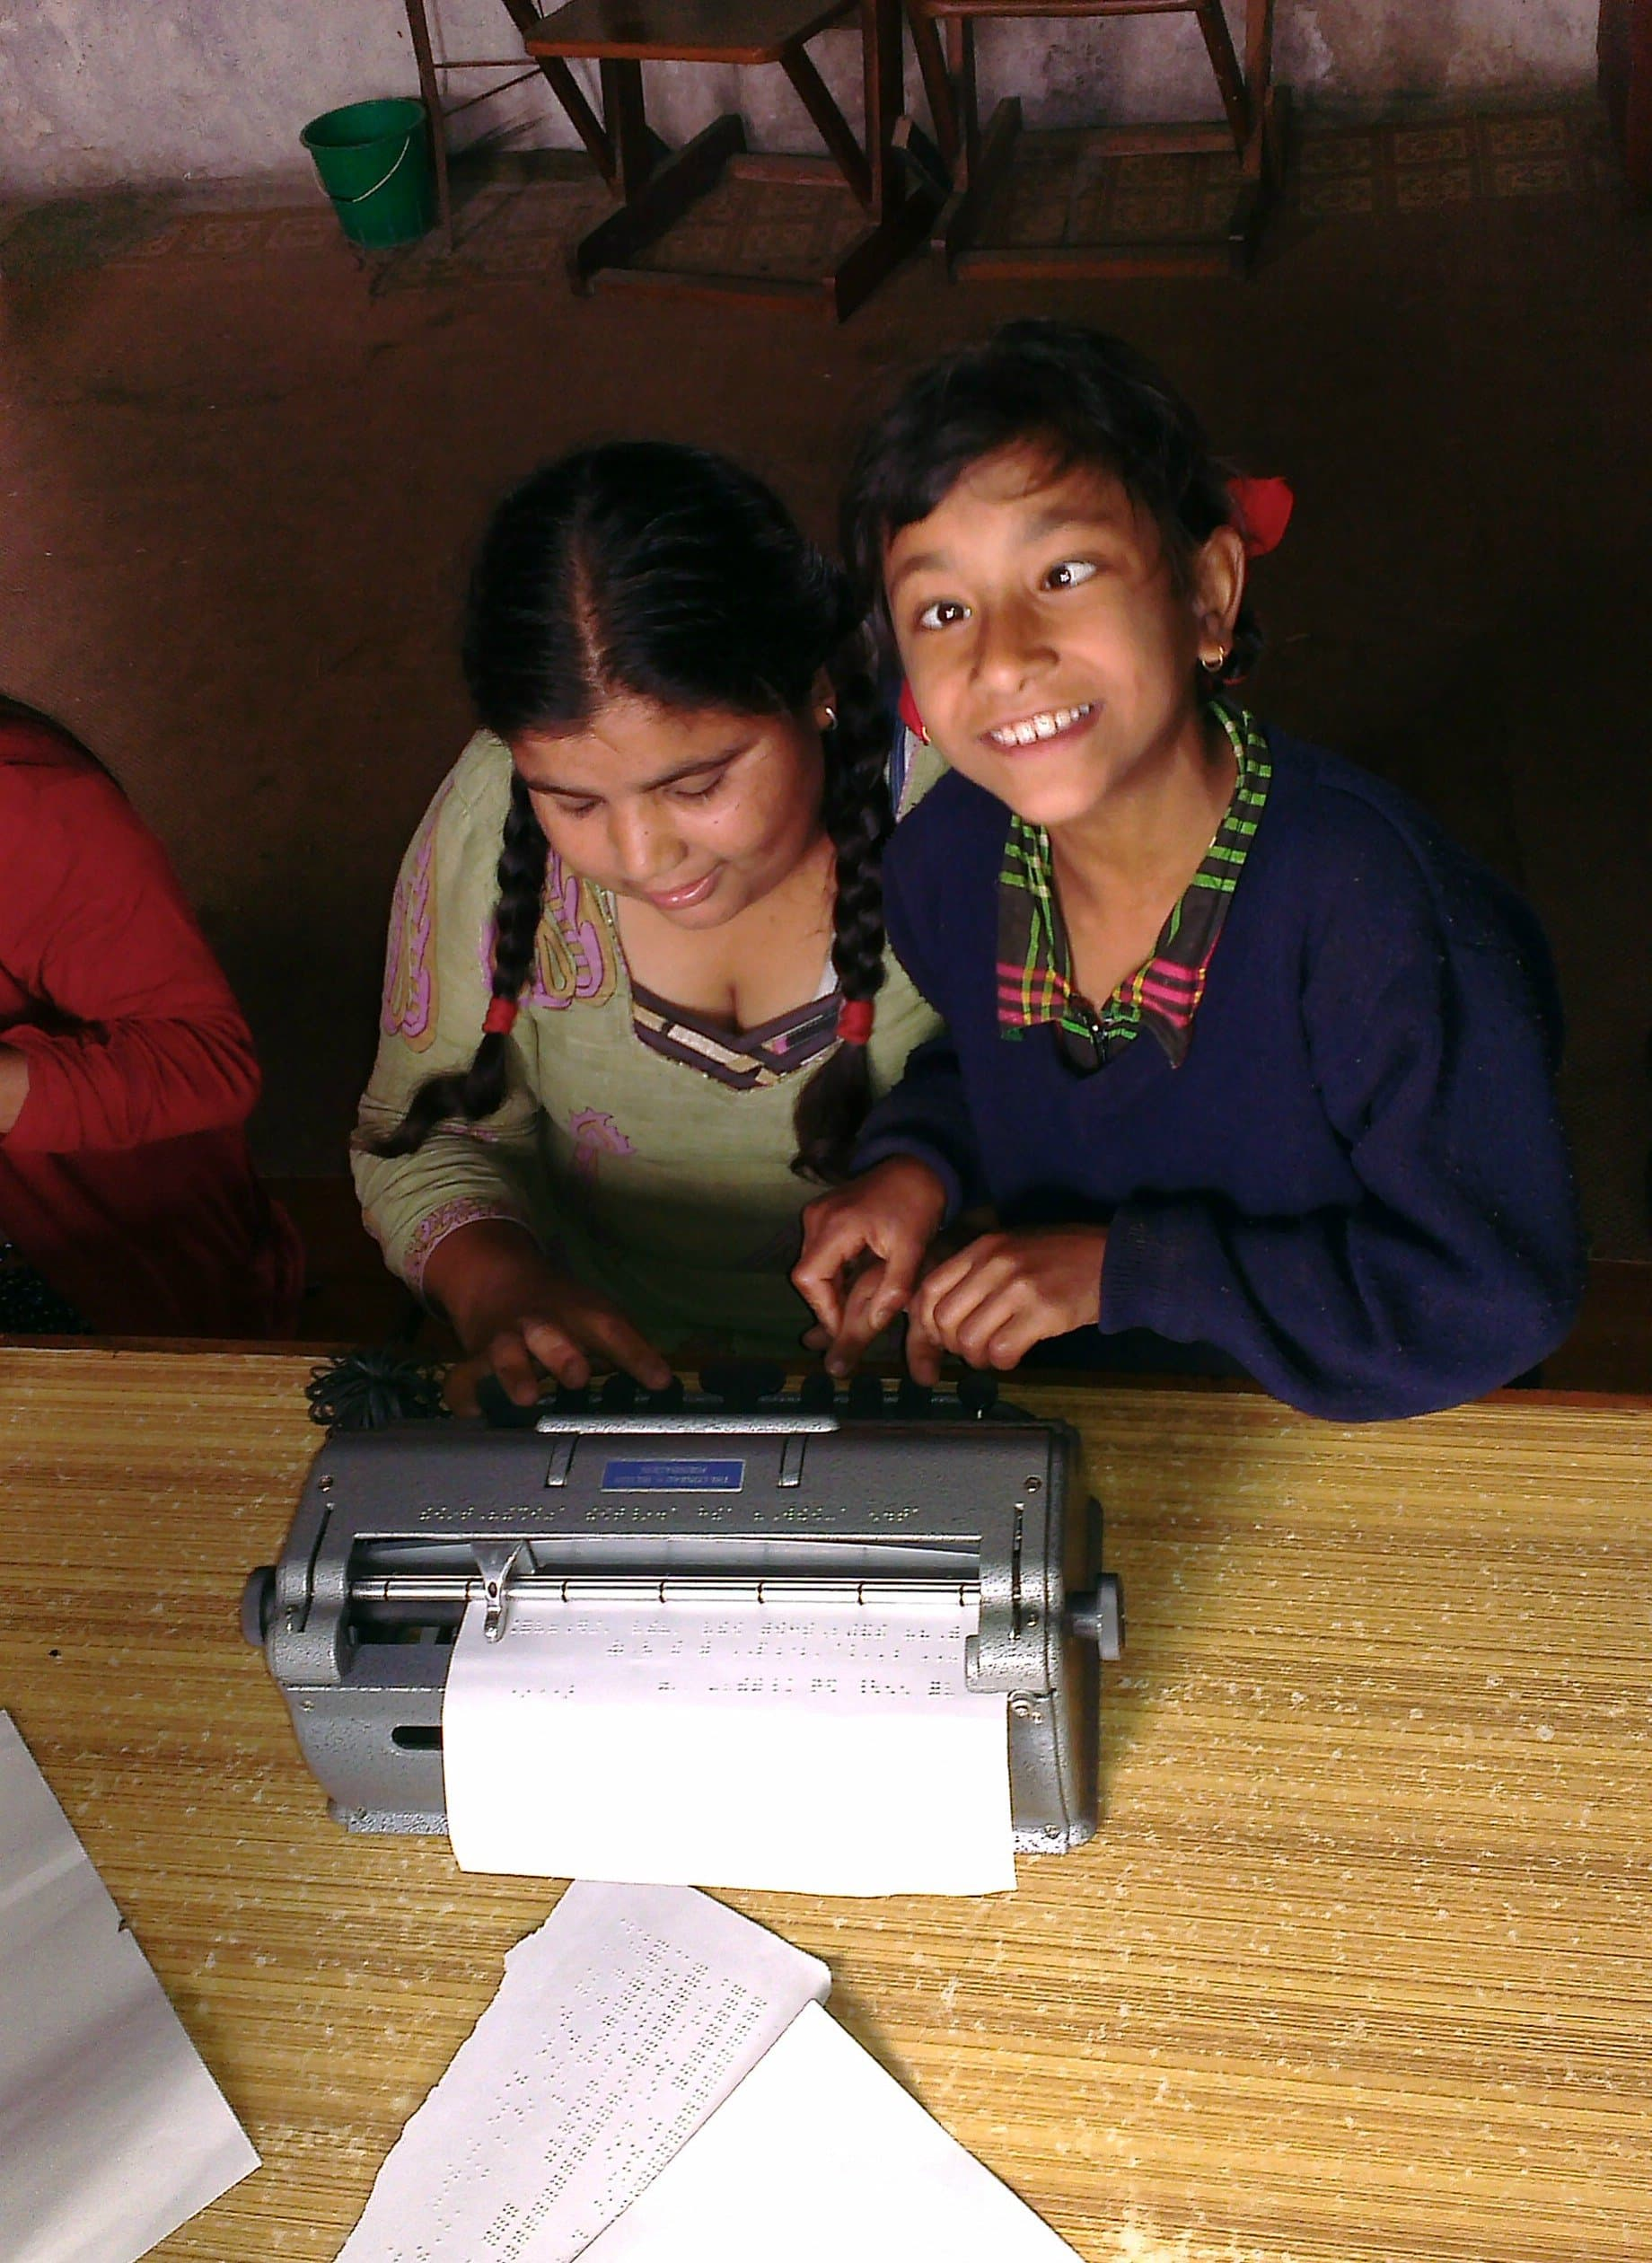 Two students in Nepal practice their writing skills using a Perkins Brailler.